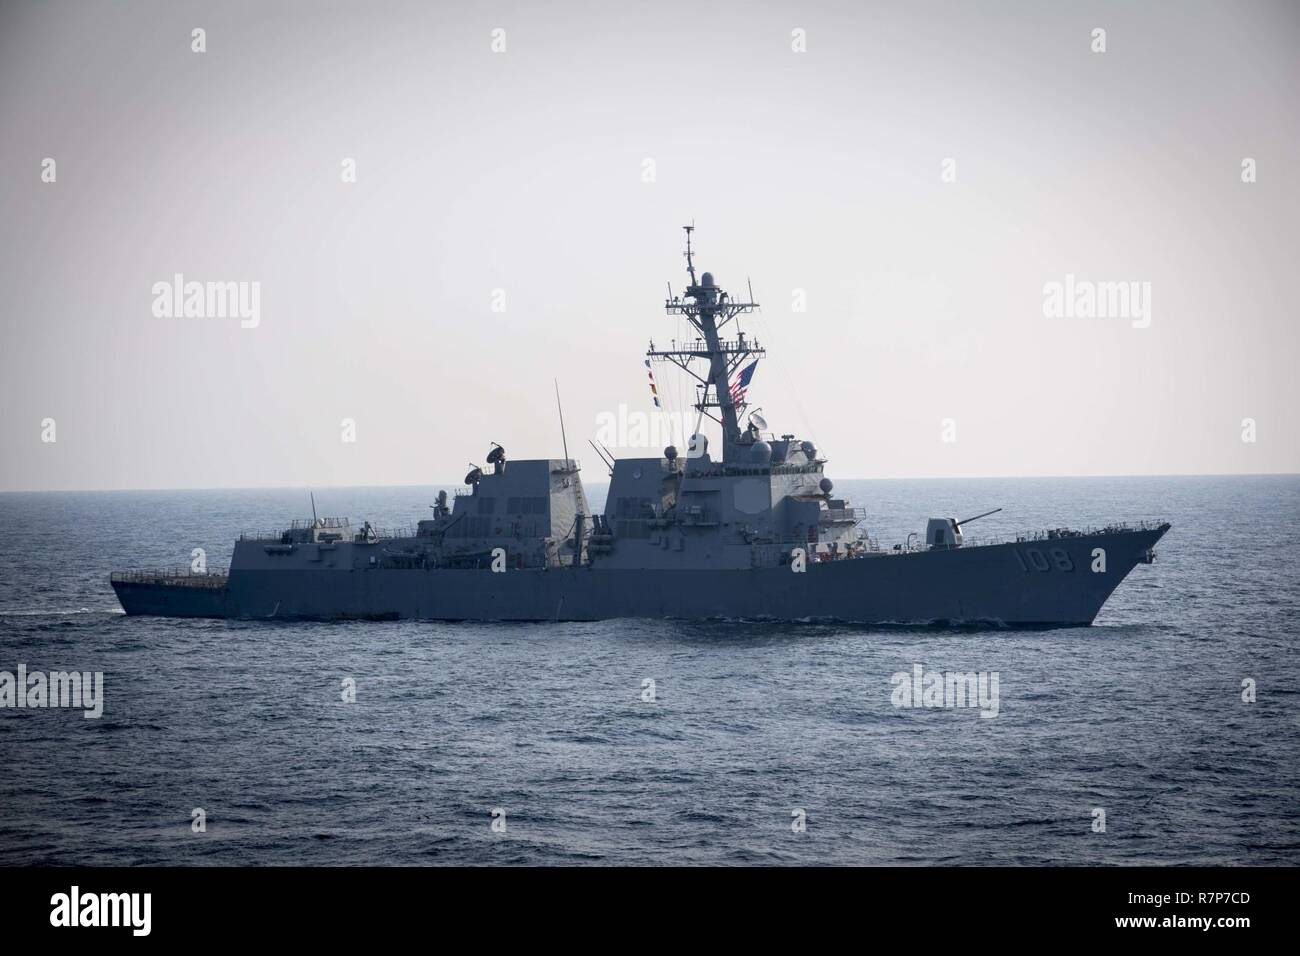 WATERS EAST OF THE KOREAN PENINSULA (March 22, 2017) The Arleigh Burke-class guided-missile destroyer USS Wayne E. Meyer (DDG 108) steams behind USS Stethem (DDG 63) as the ships participate in surface maneuvers with several other U.S. and Republic of Korea Navy ships and submarines during Foal Eagle (FE) 17. FE 17 is a series of annual training events designed to increase readiness to defend the ROK, protect the region, and maintain stability in the Korean Peninsula. - Stock Image